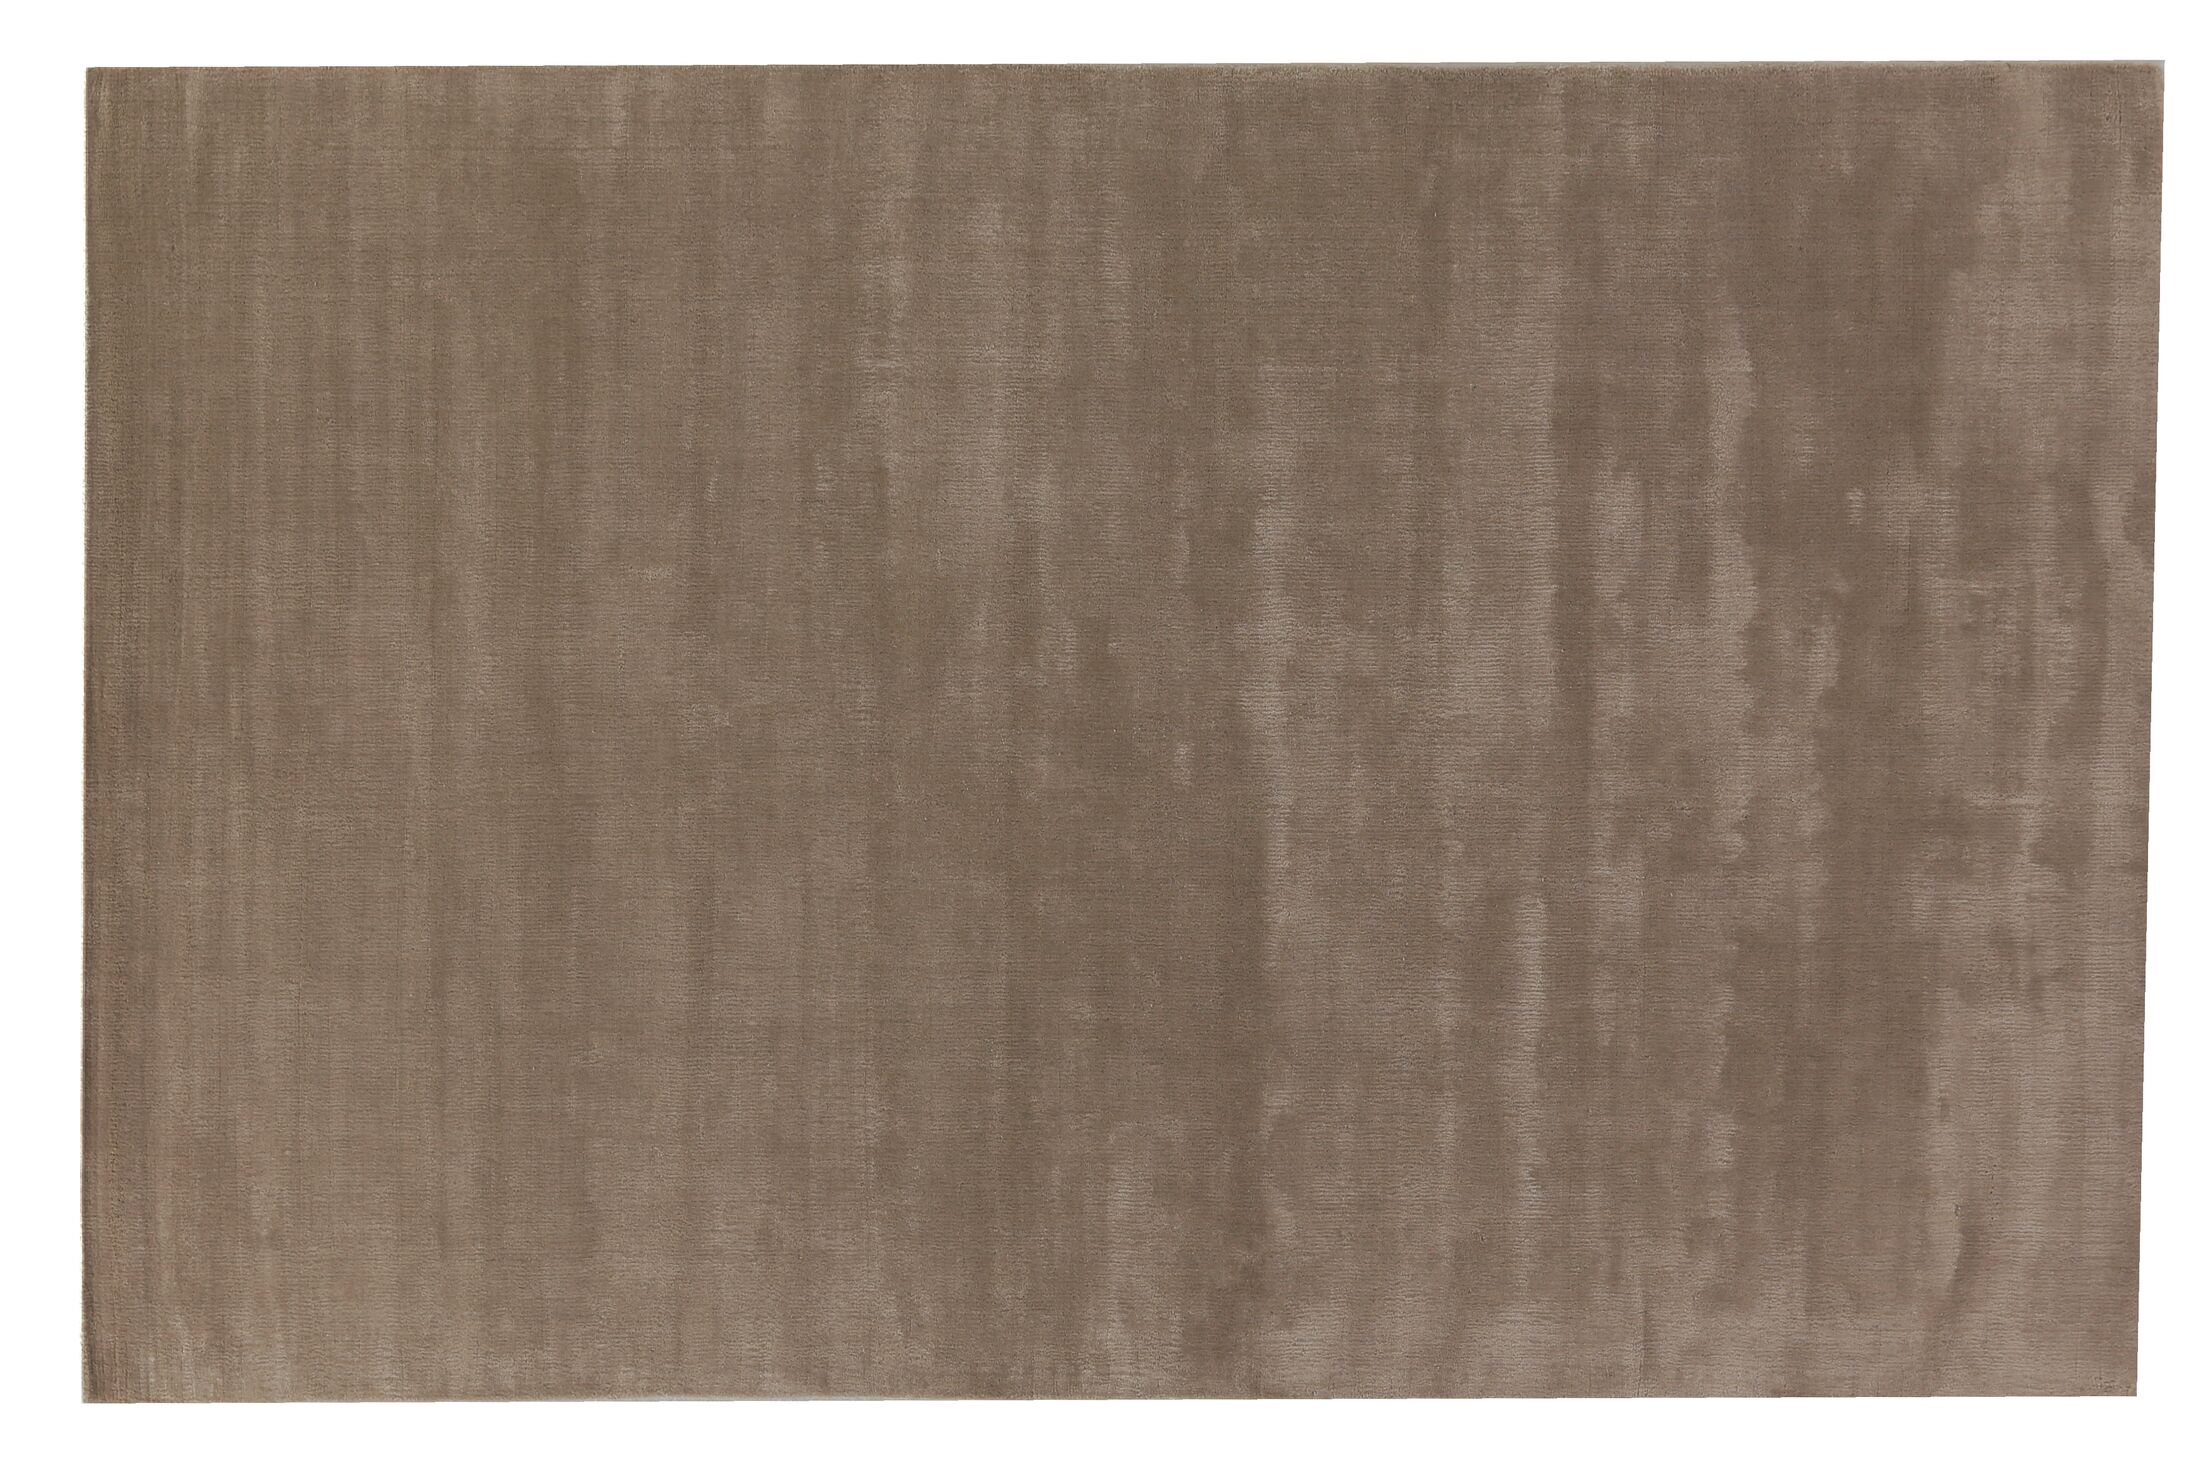 Smart Gem Hand-Woven Wool Brown Area Rug Size: Rectangle 15' x 20'